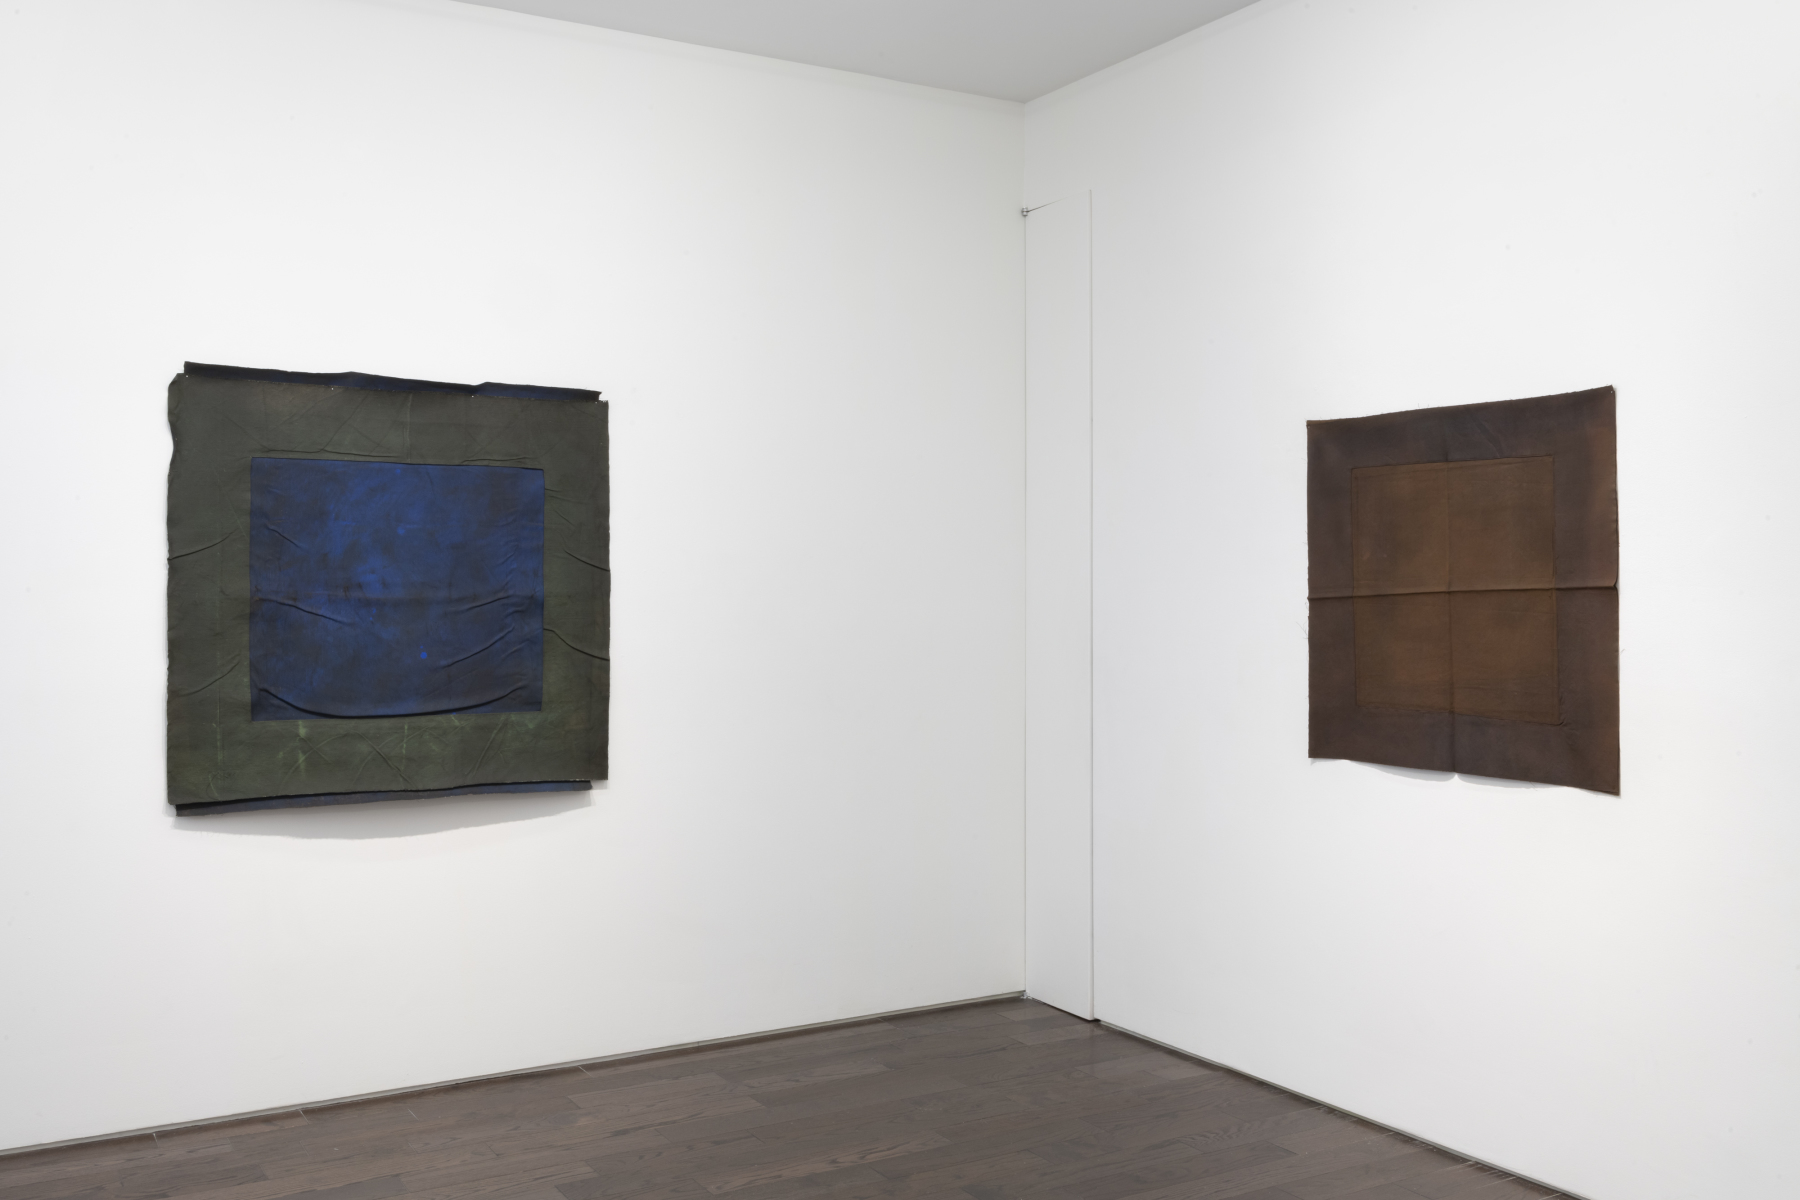 Exhibition View, André Valensi, Oeuvres 1971-1992, C&B New York, 2021 (3)